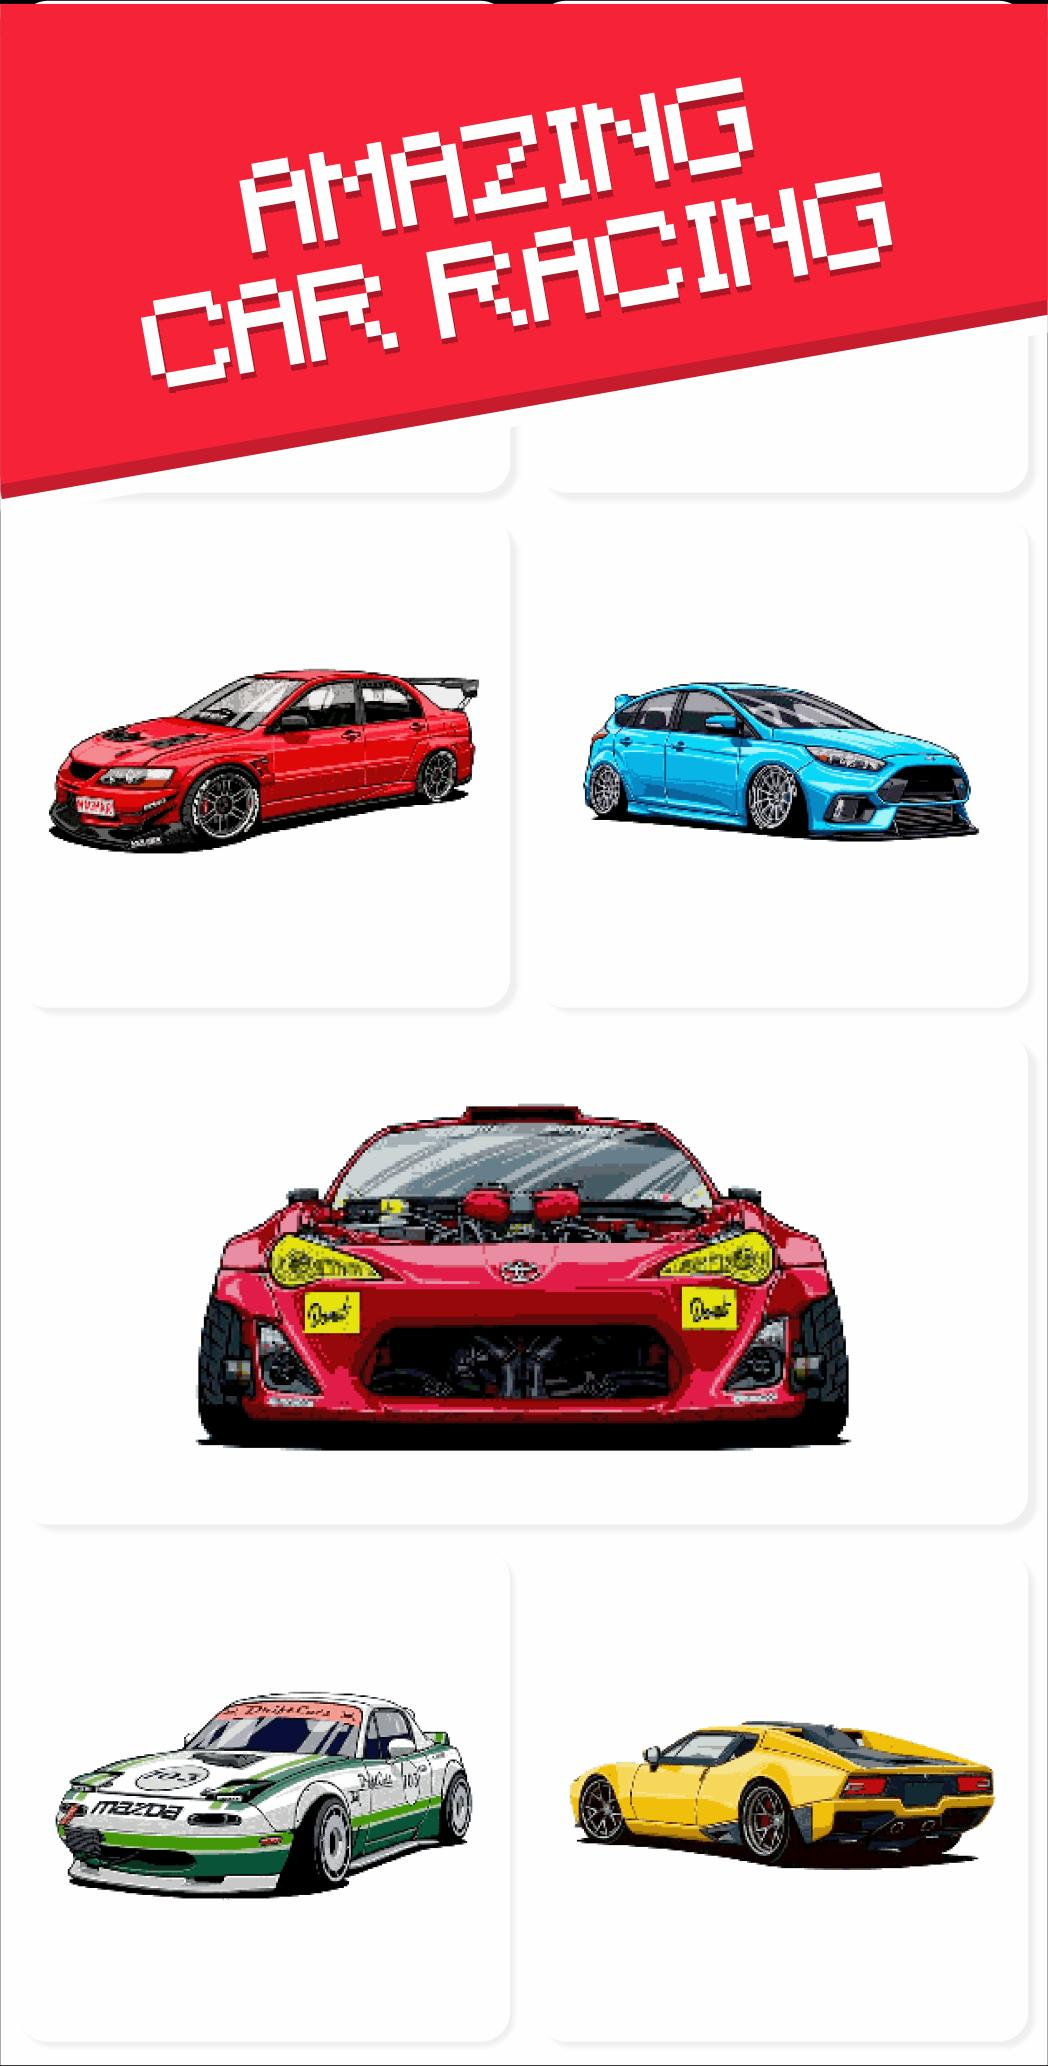 Pixel Art Cars Racing Color By Number For Adults For